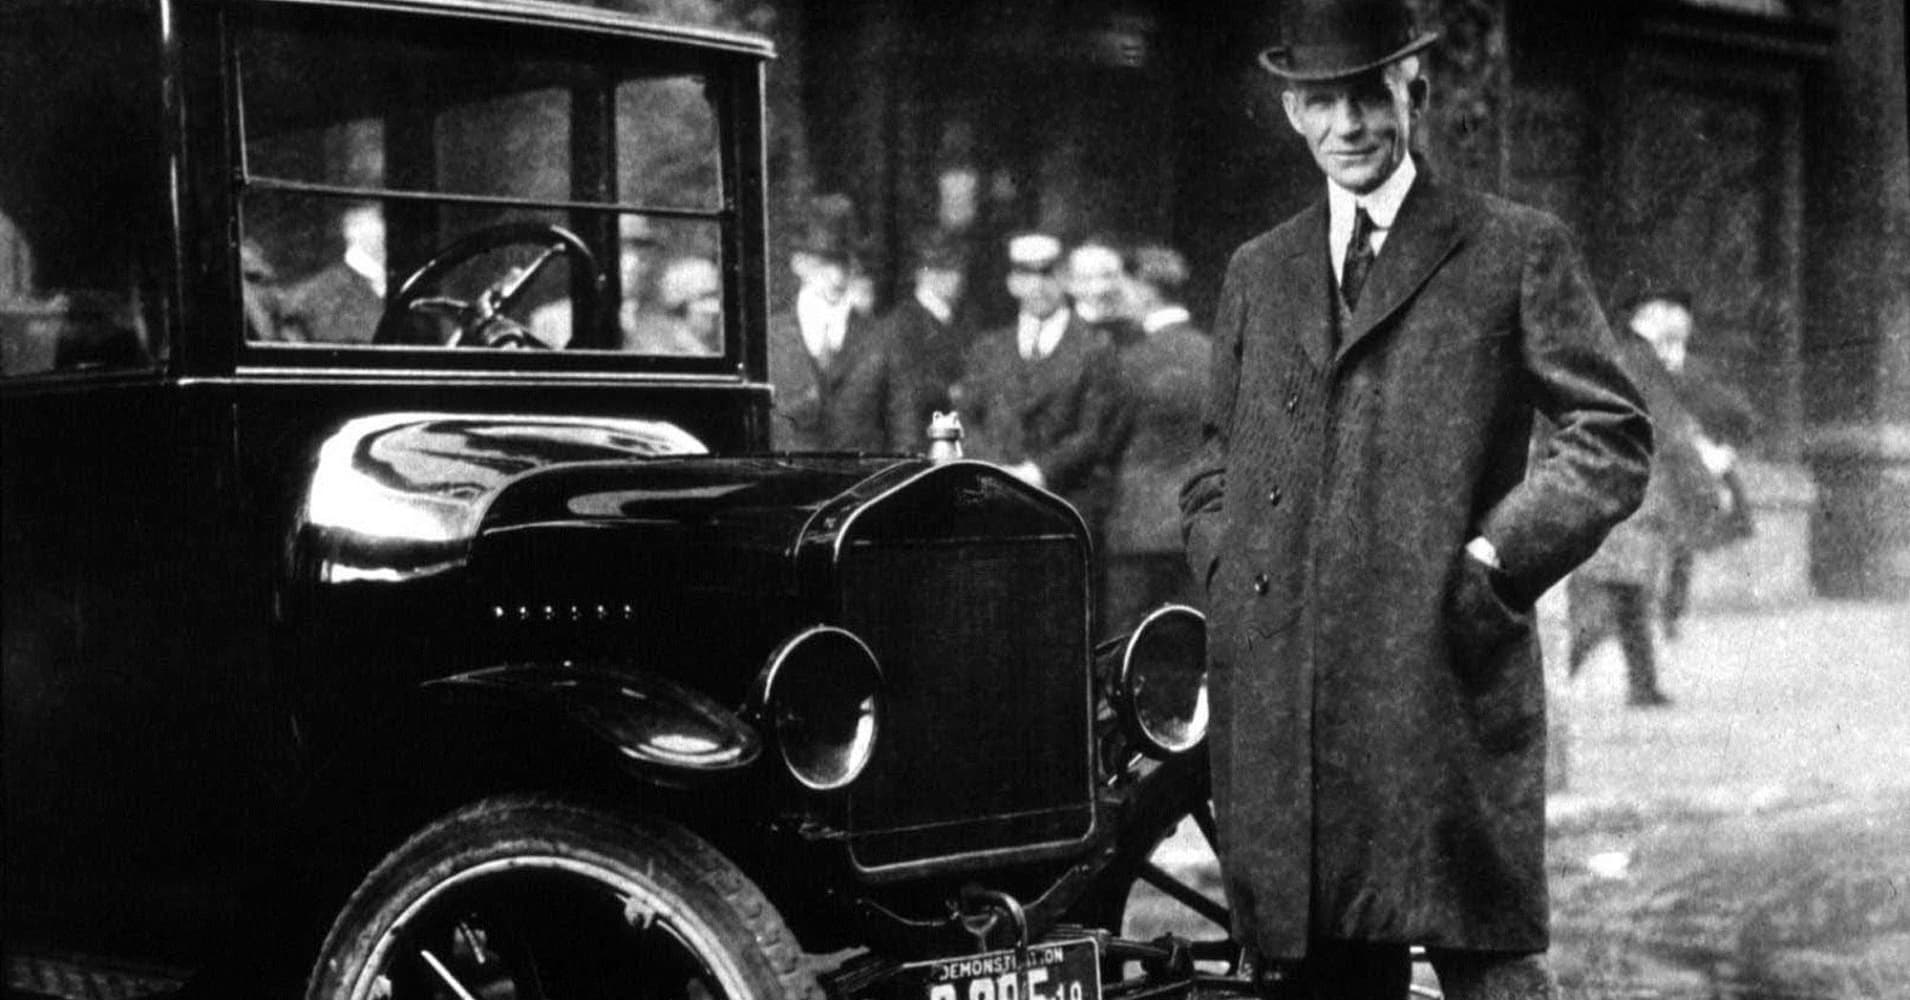 Mayor's attempt to censor local article about Henry Ford's anti-Semitism draws national attention